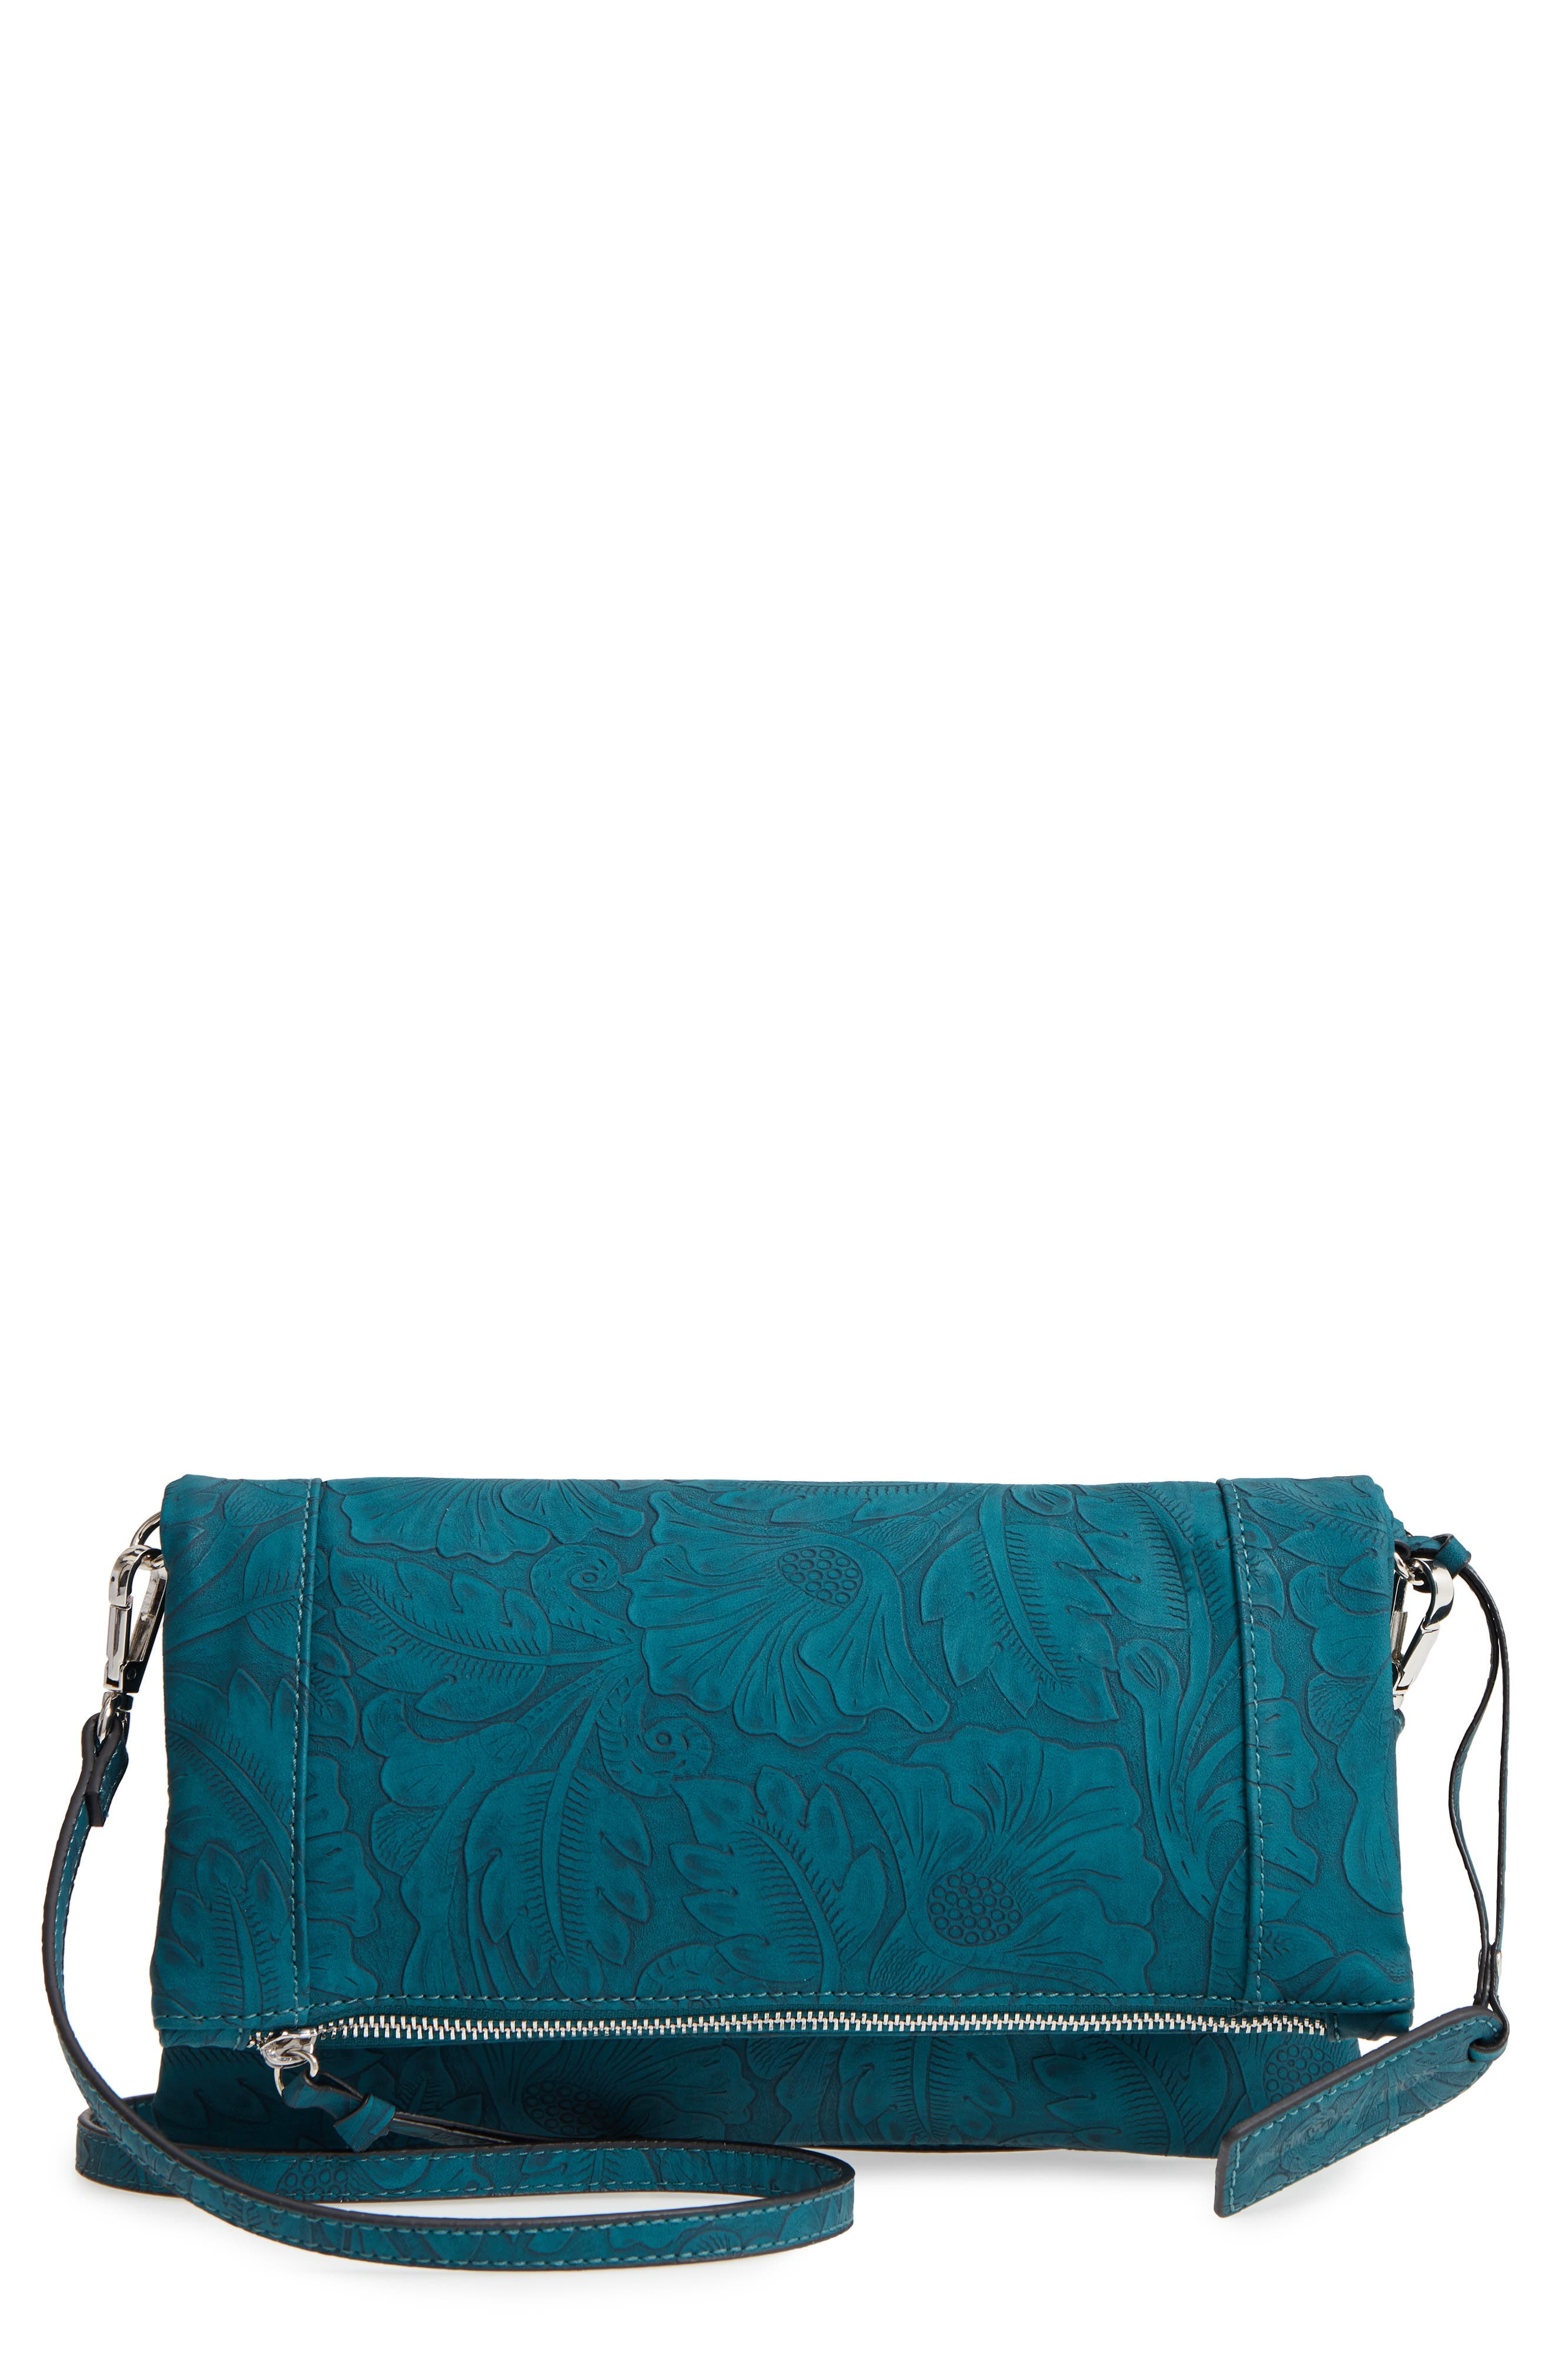 Tooled Faux Leather Foldover Clutch,                             Main thumbnail 1, color,                             400